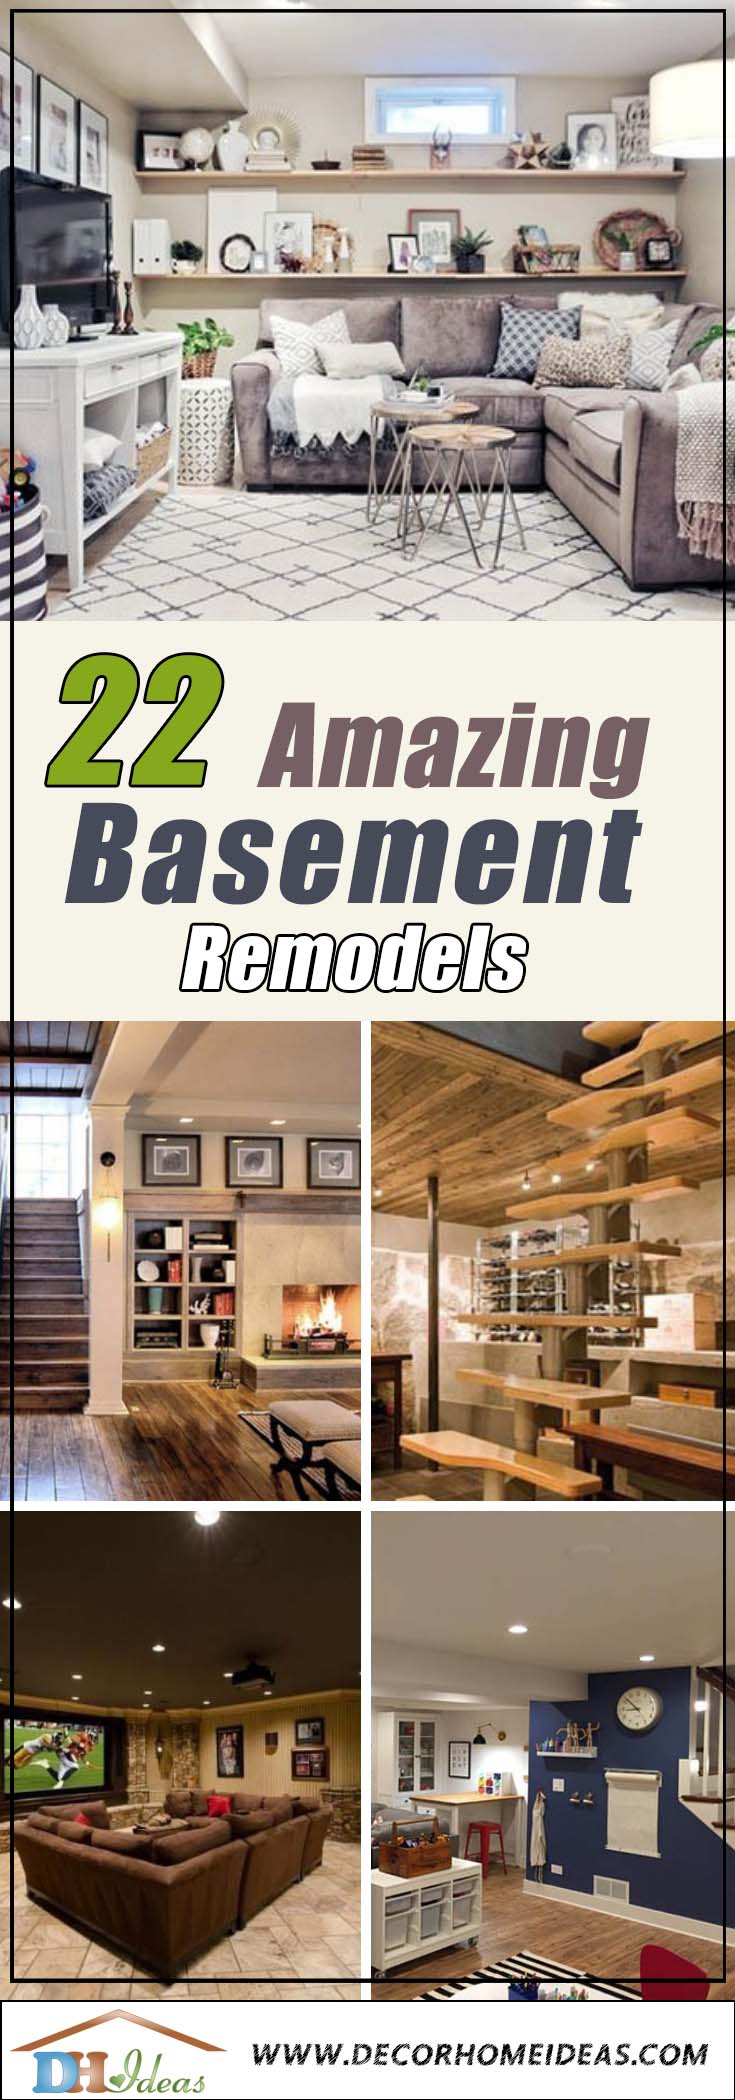 22 Basement Remodels Ideas Pinterest #basement #basementremodel #basementideas #basementdecor #homedecor #decorhomeideas